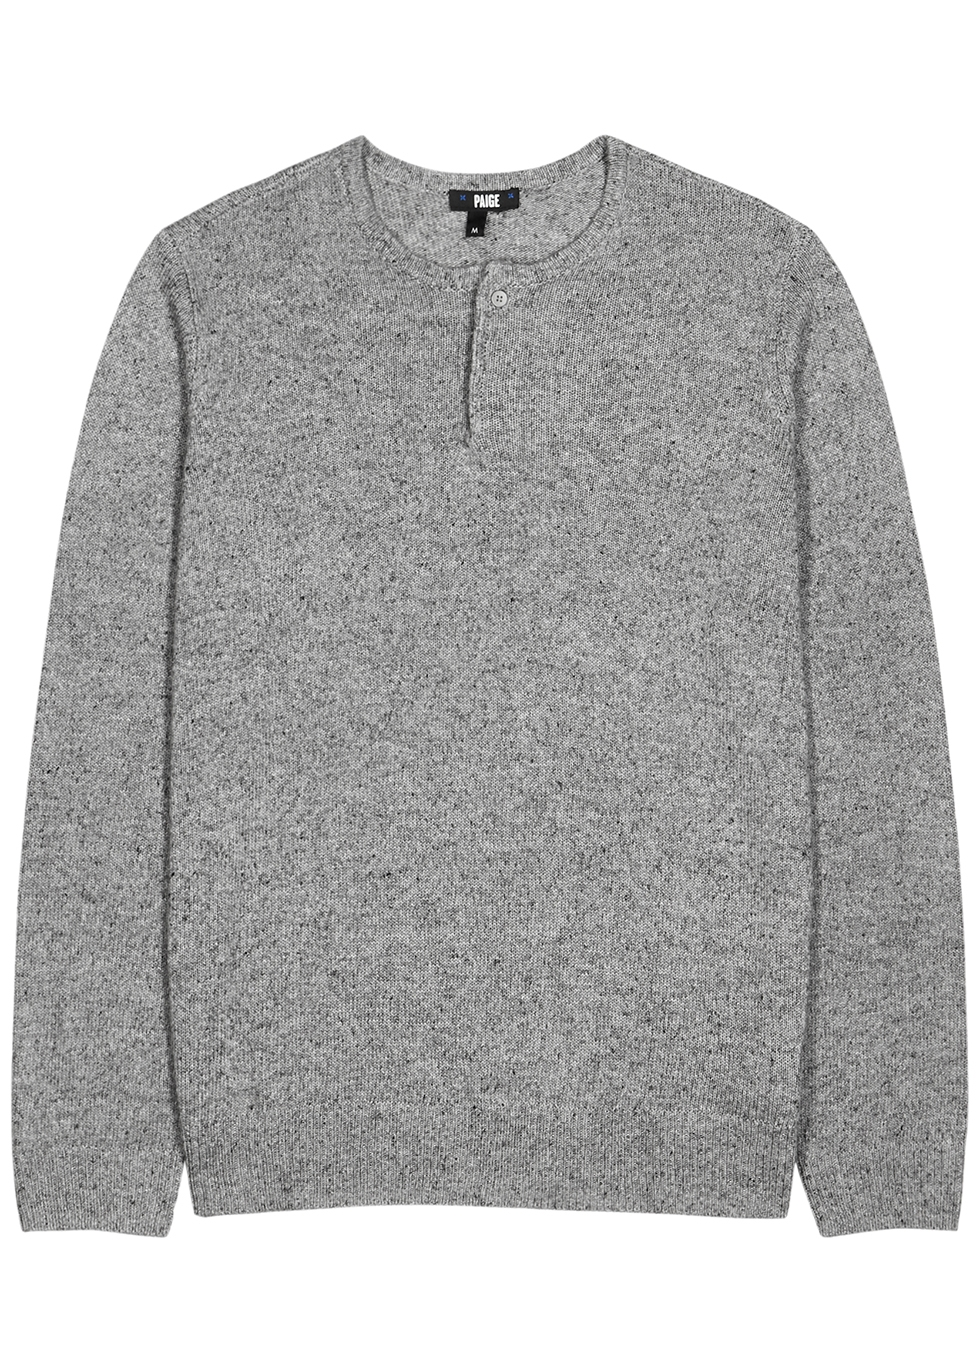 Henley grey knitted top